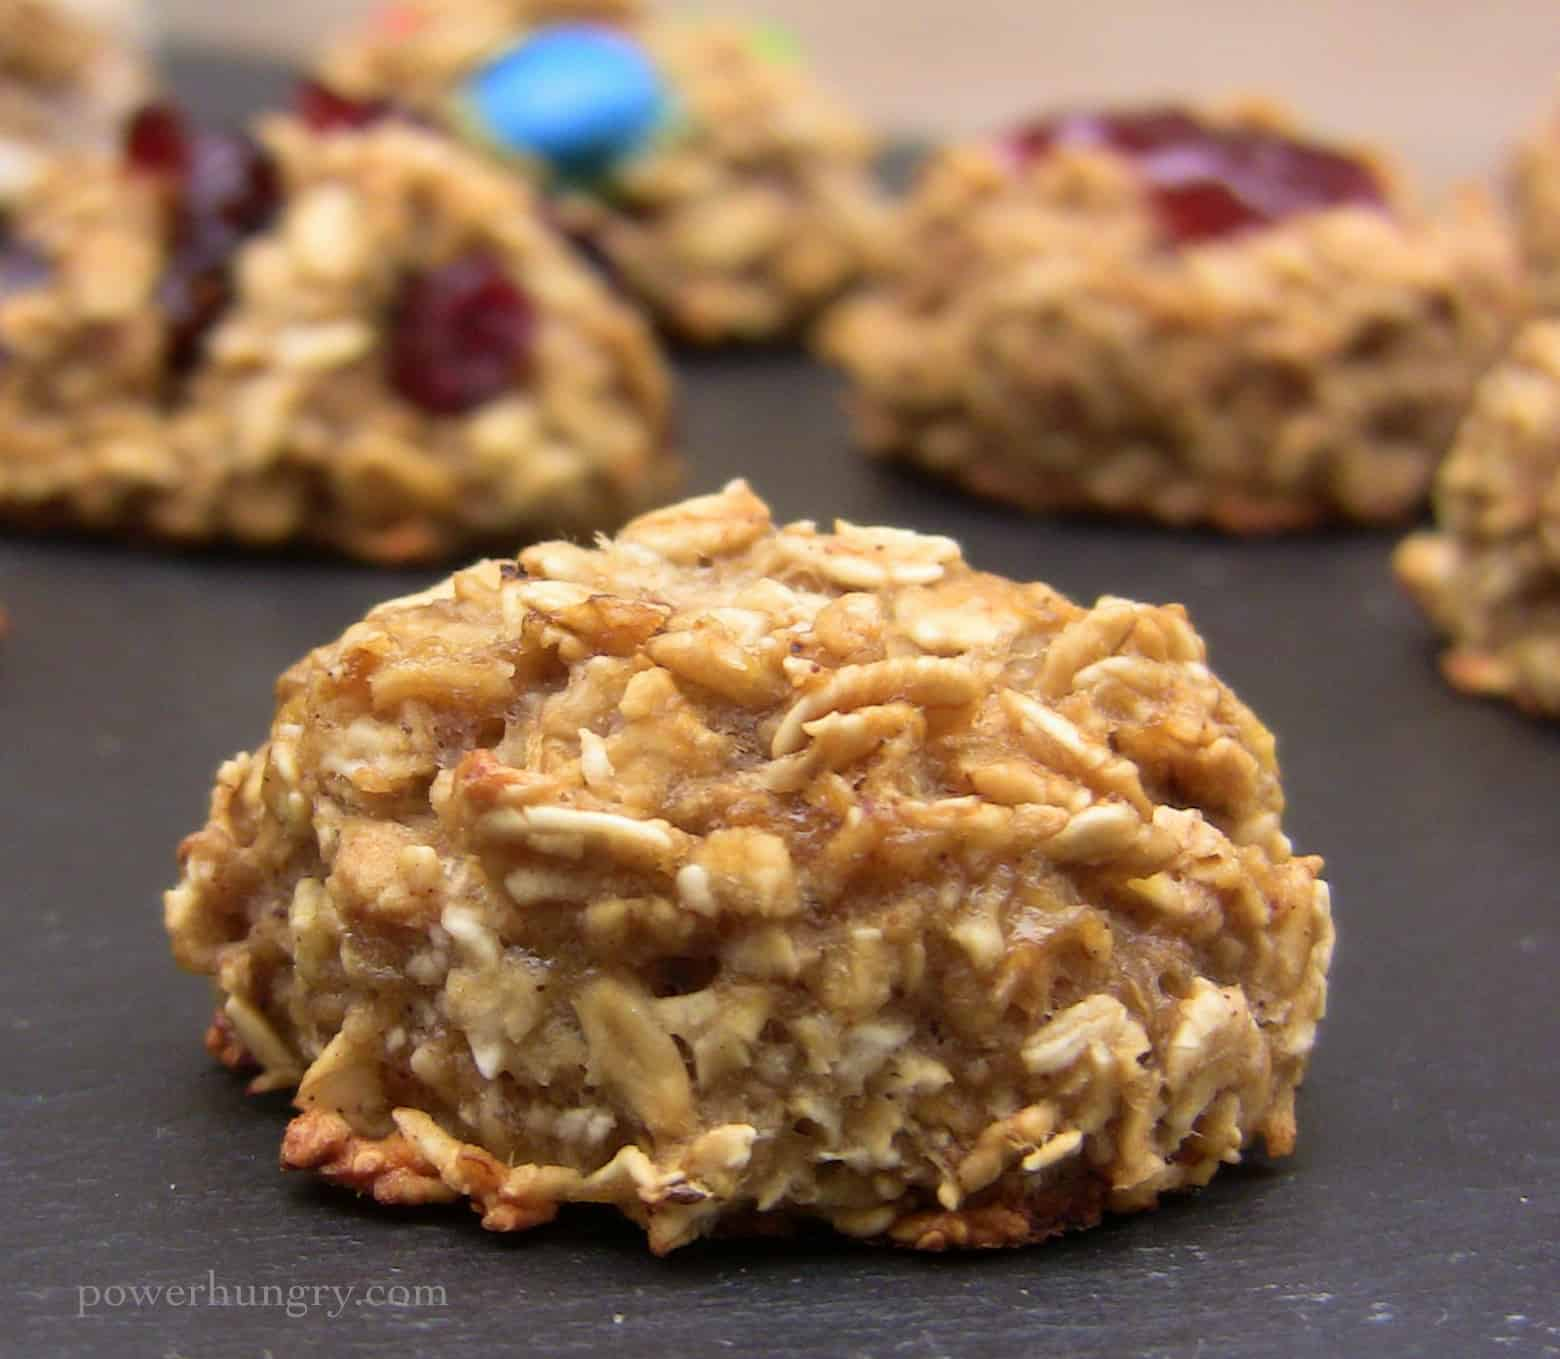 2-Ingredient Oatmeal Cookies {gluten-free, refined sugar-free, vegan}